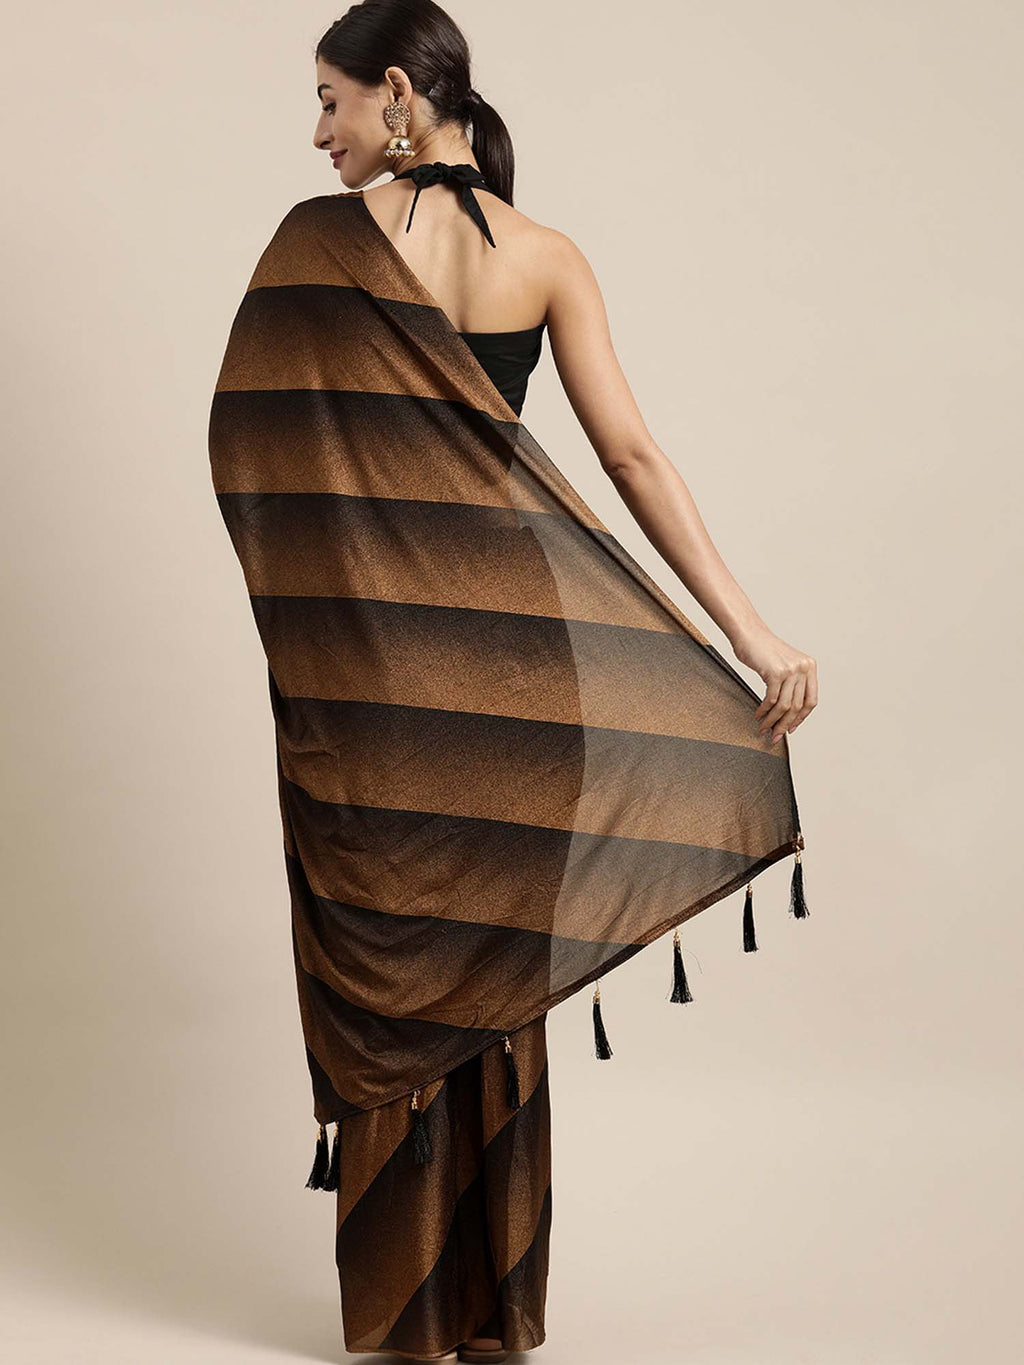 Brown and Black Color Poly Crepe Saree With Tassels and Fancy Blouse - Riviera Closet